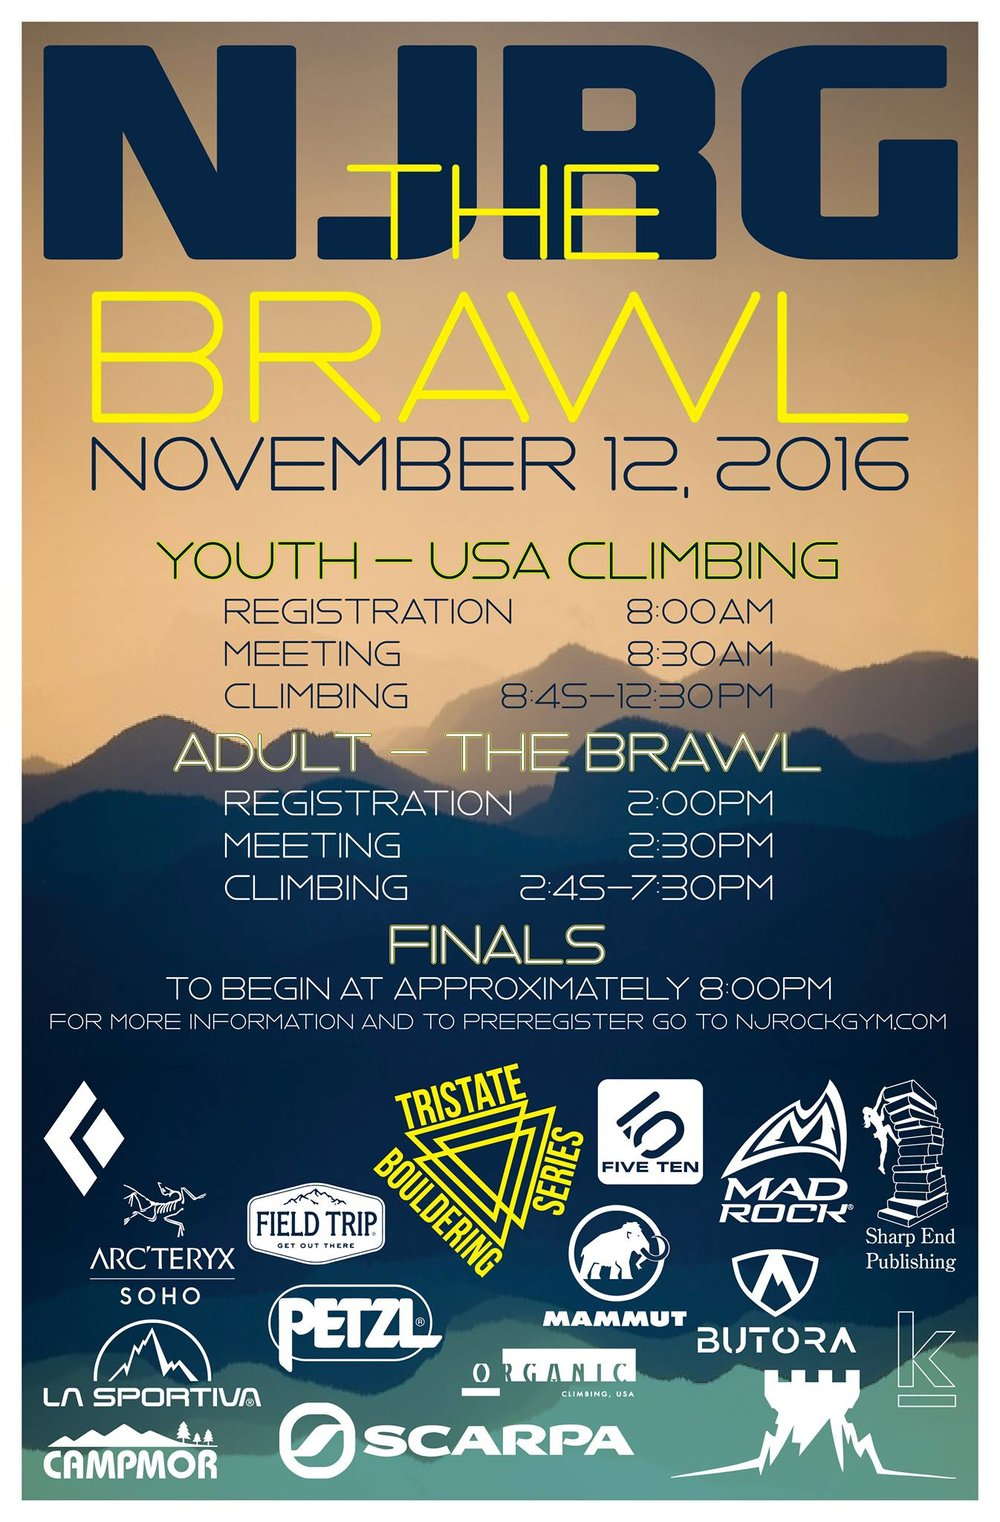 the brawl 2016 opeN citizens